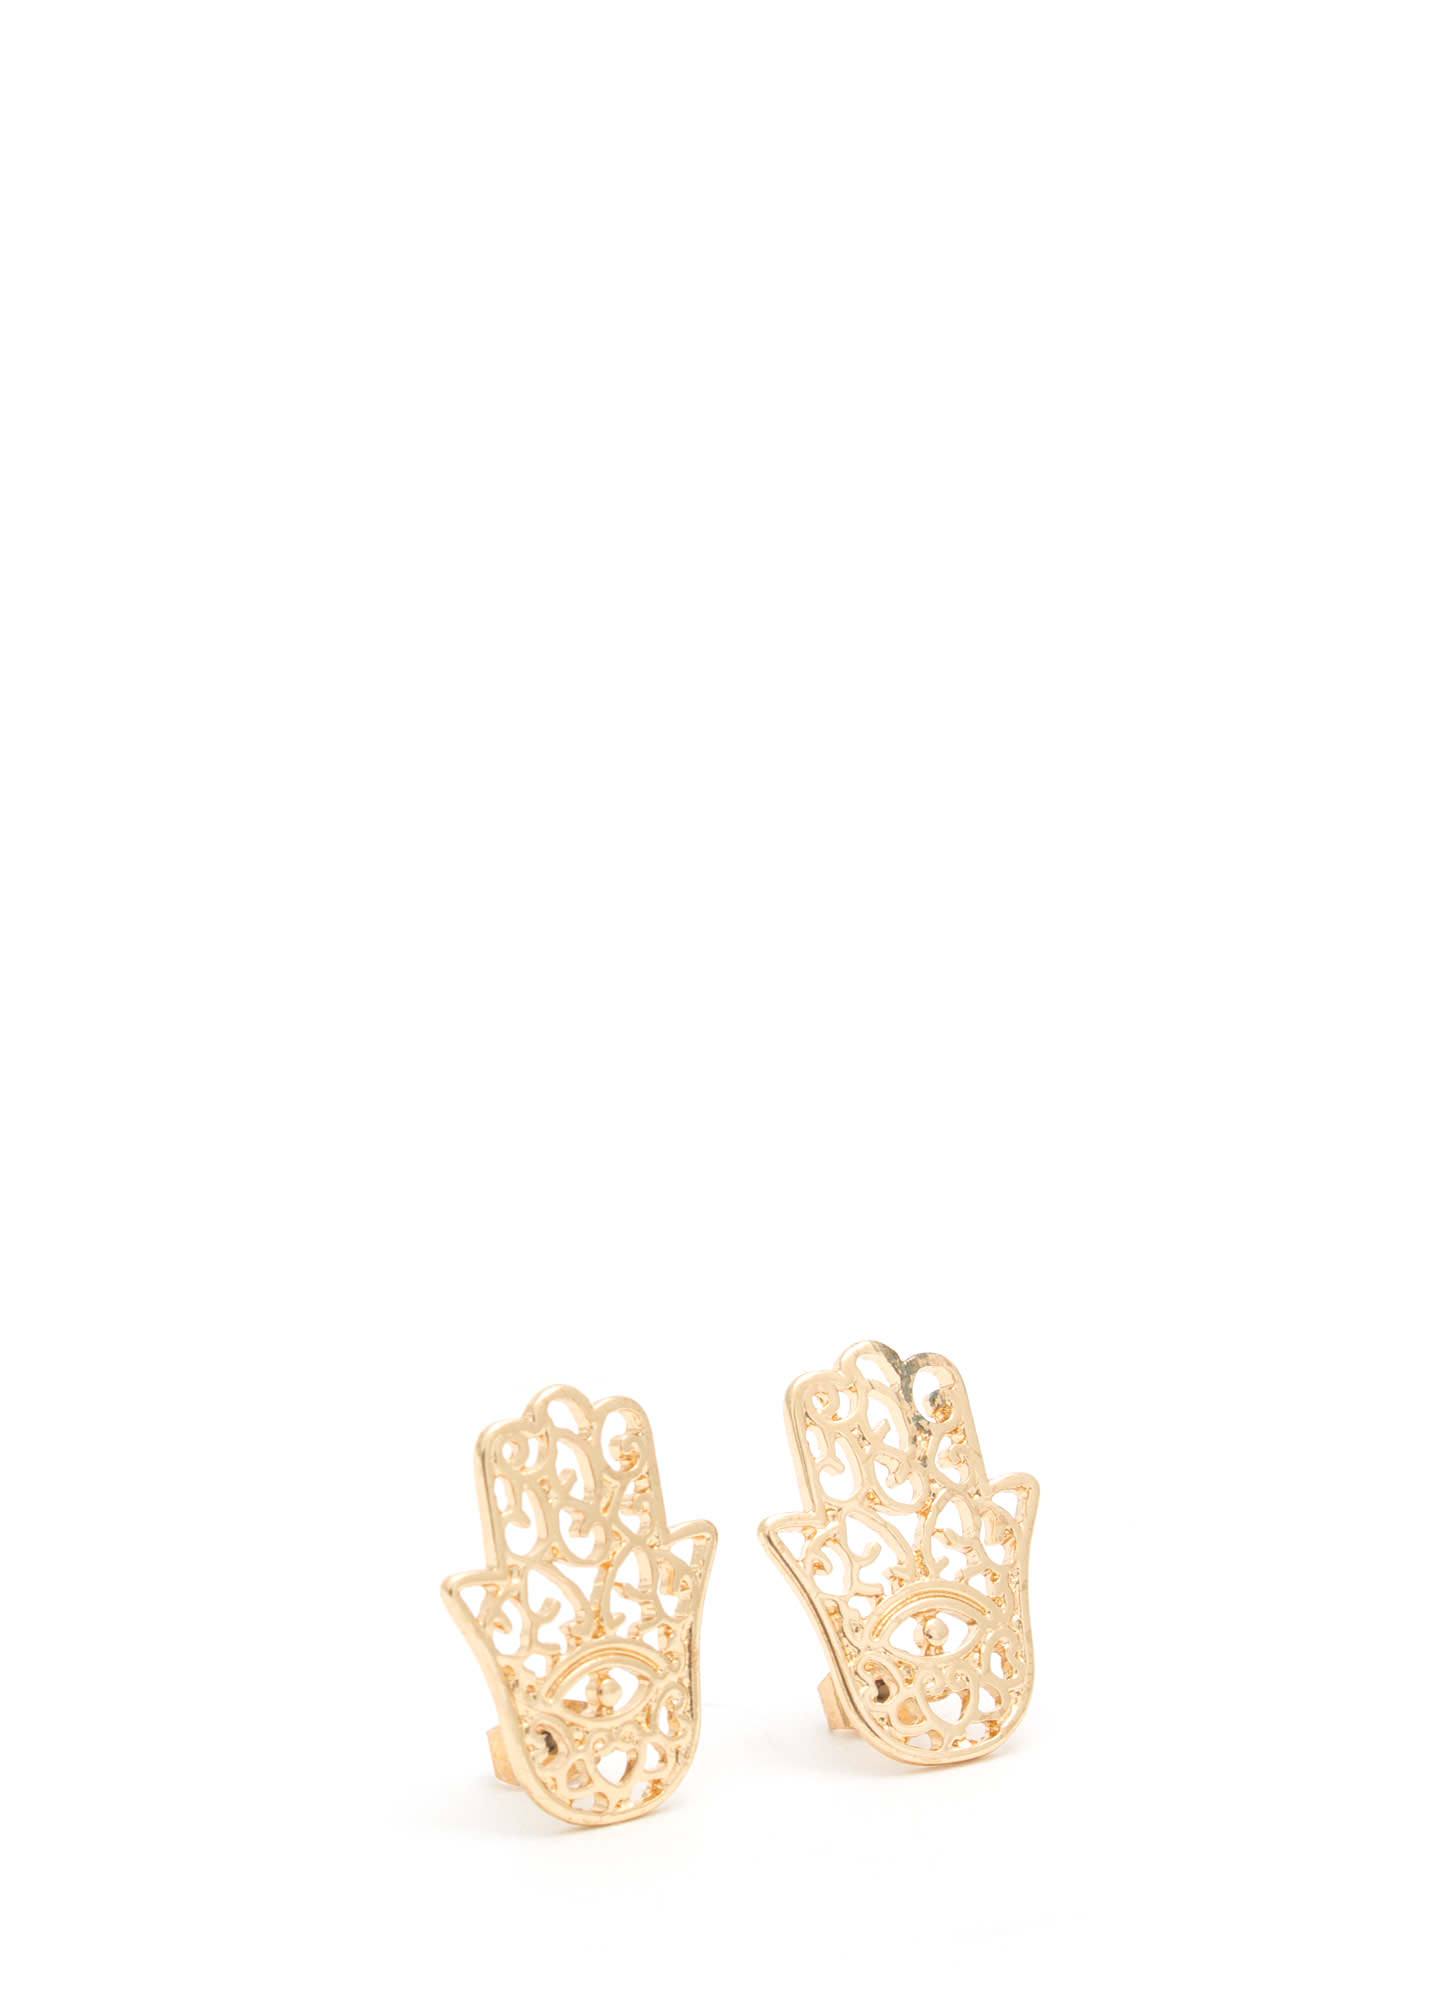 Use Protection Cut-Out Hamsa Earrings GOLD